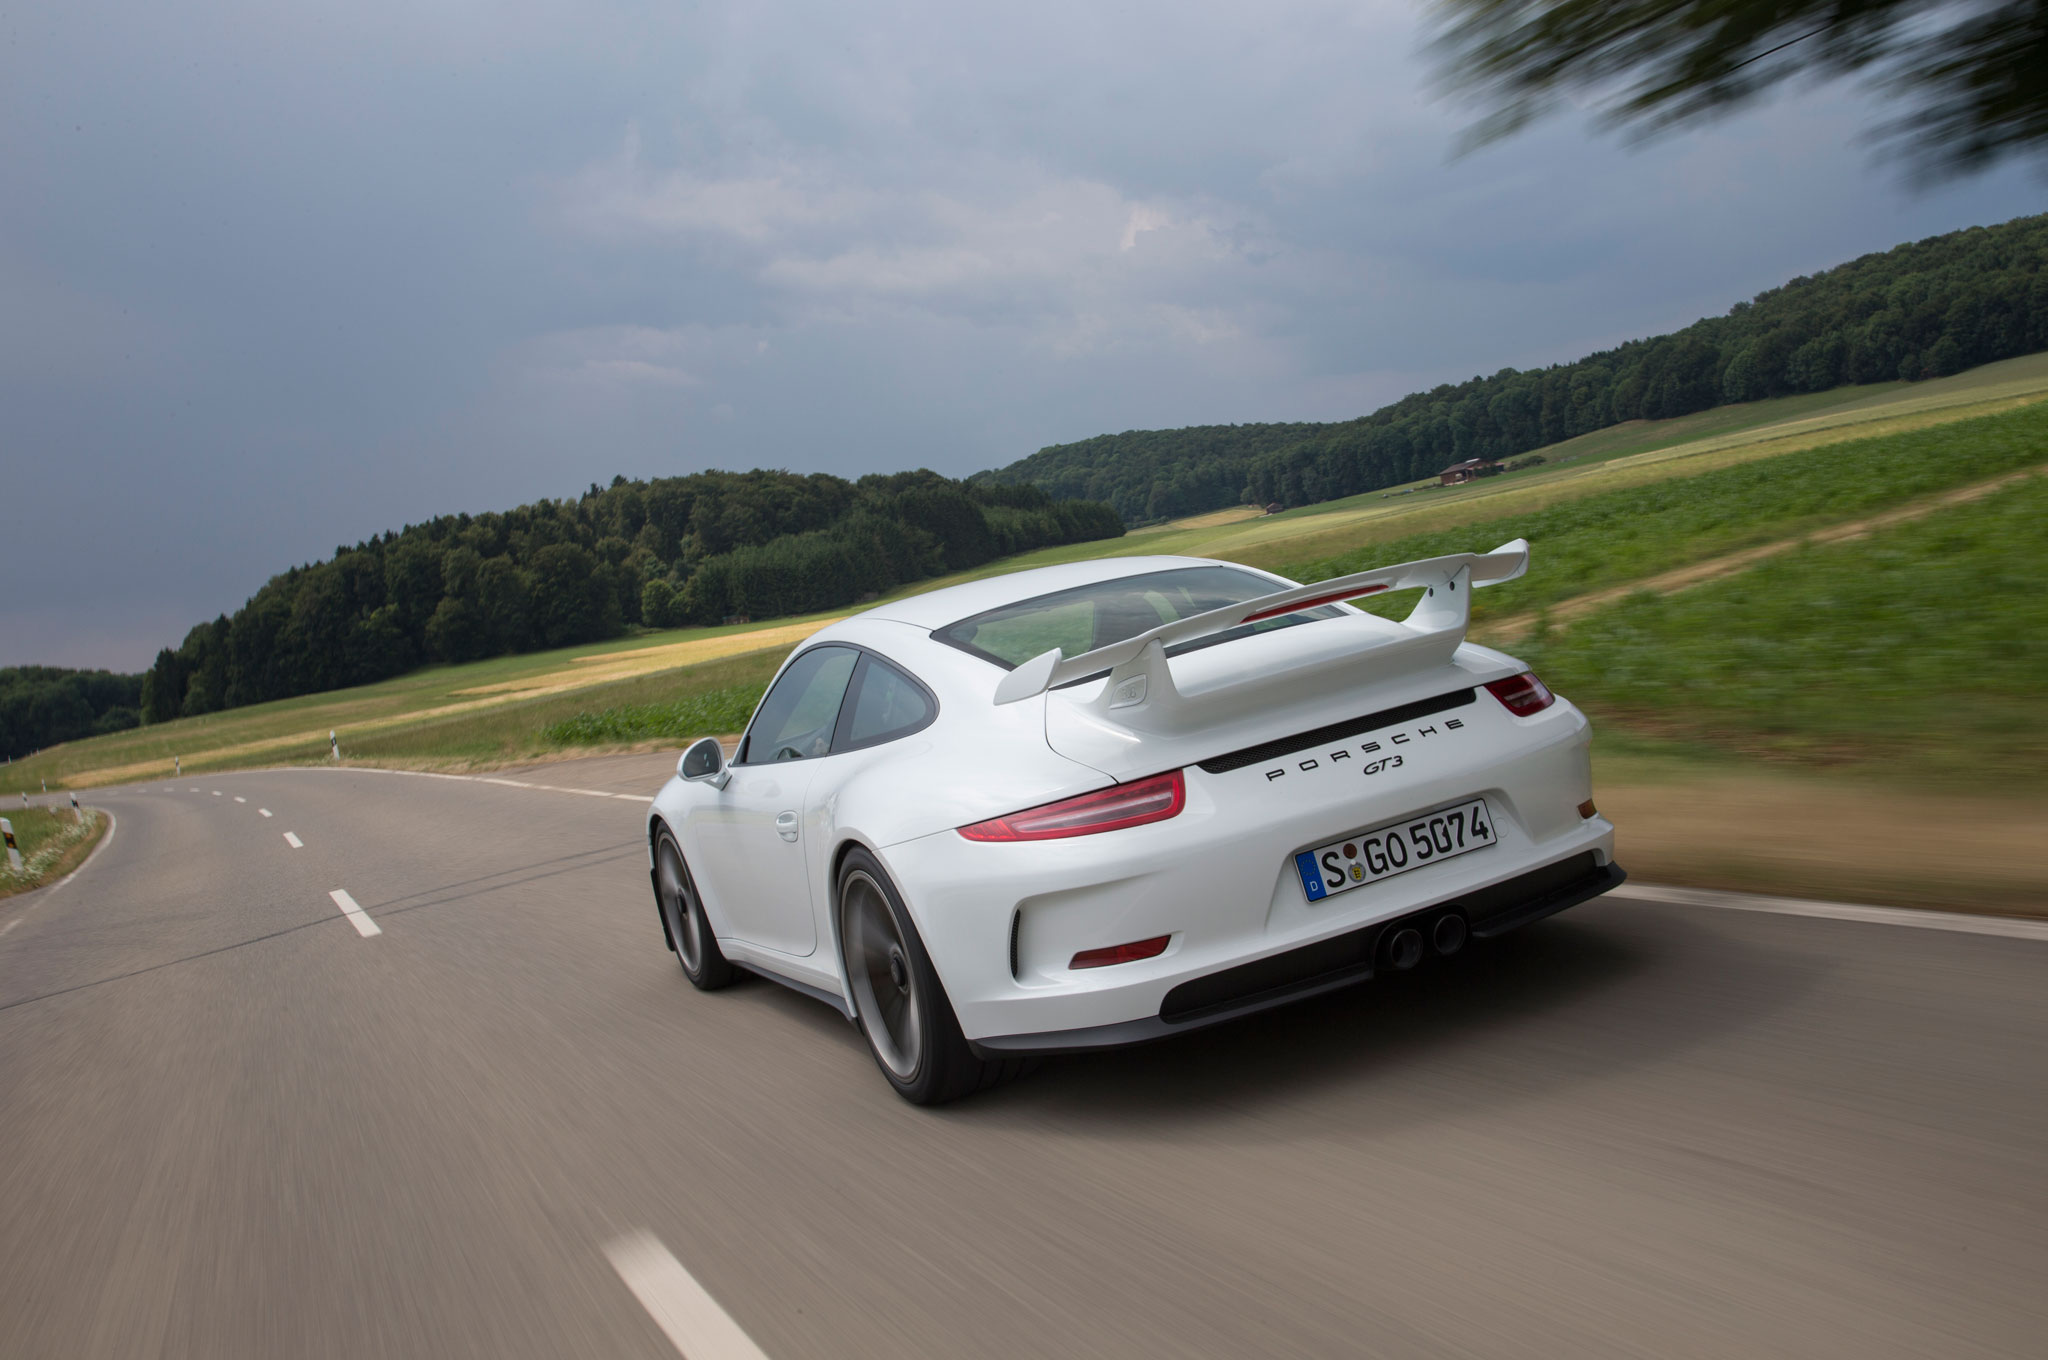 2014 Porsche 911 GT3 Rear Left View1